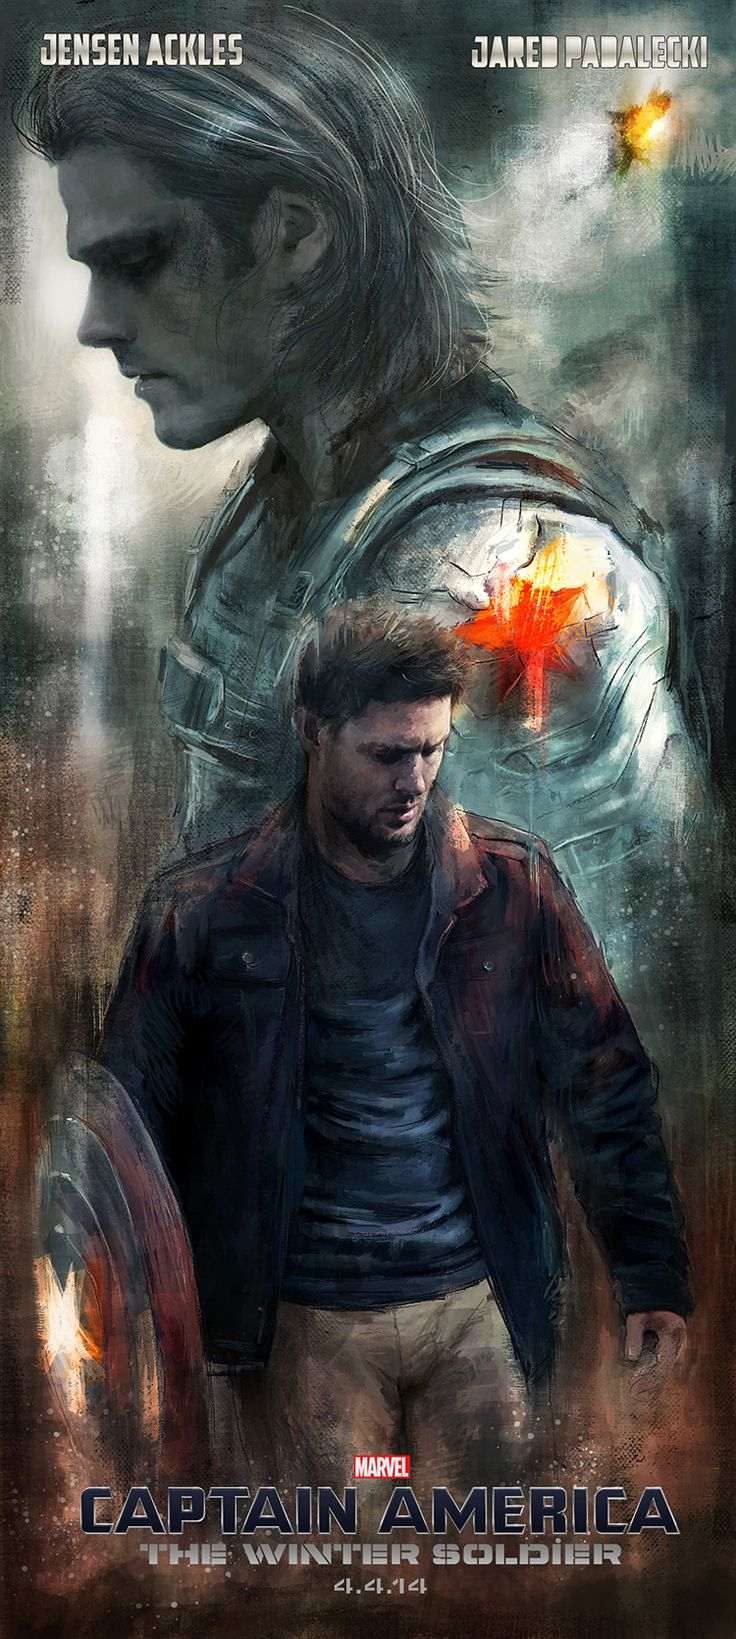 """ Jared Padalecki as The Winter Soldier and Jensen Ackles as Captain America. My contribution to this month's Spn art challenge and the theme ""Poster Movie Crossover"". "" by Petite-Madame on Tumblr."